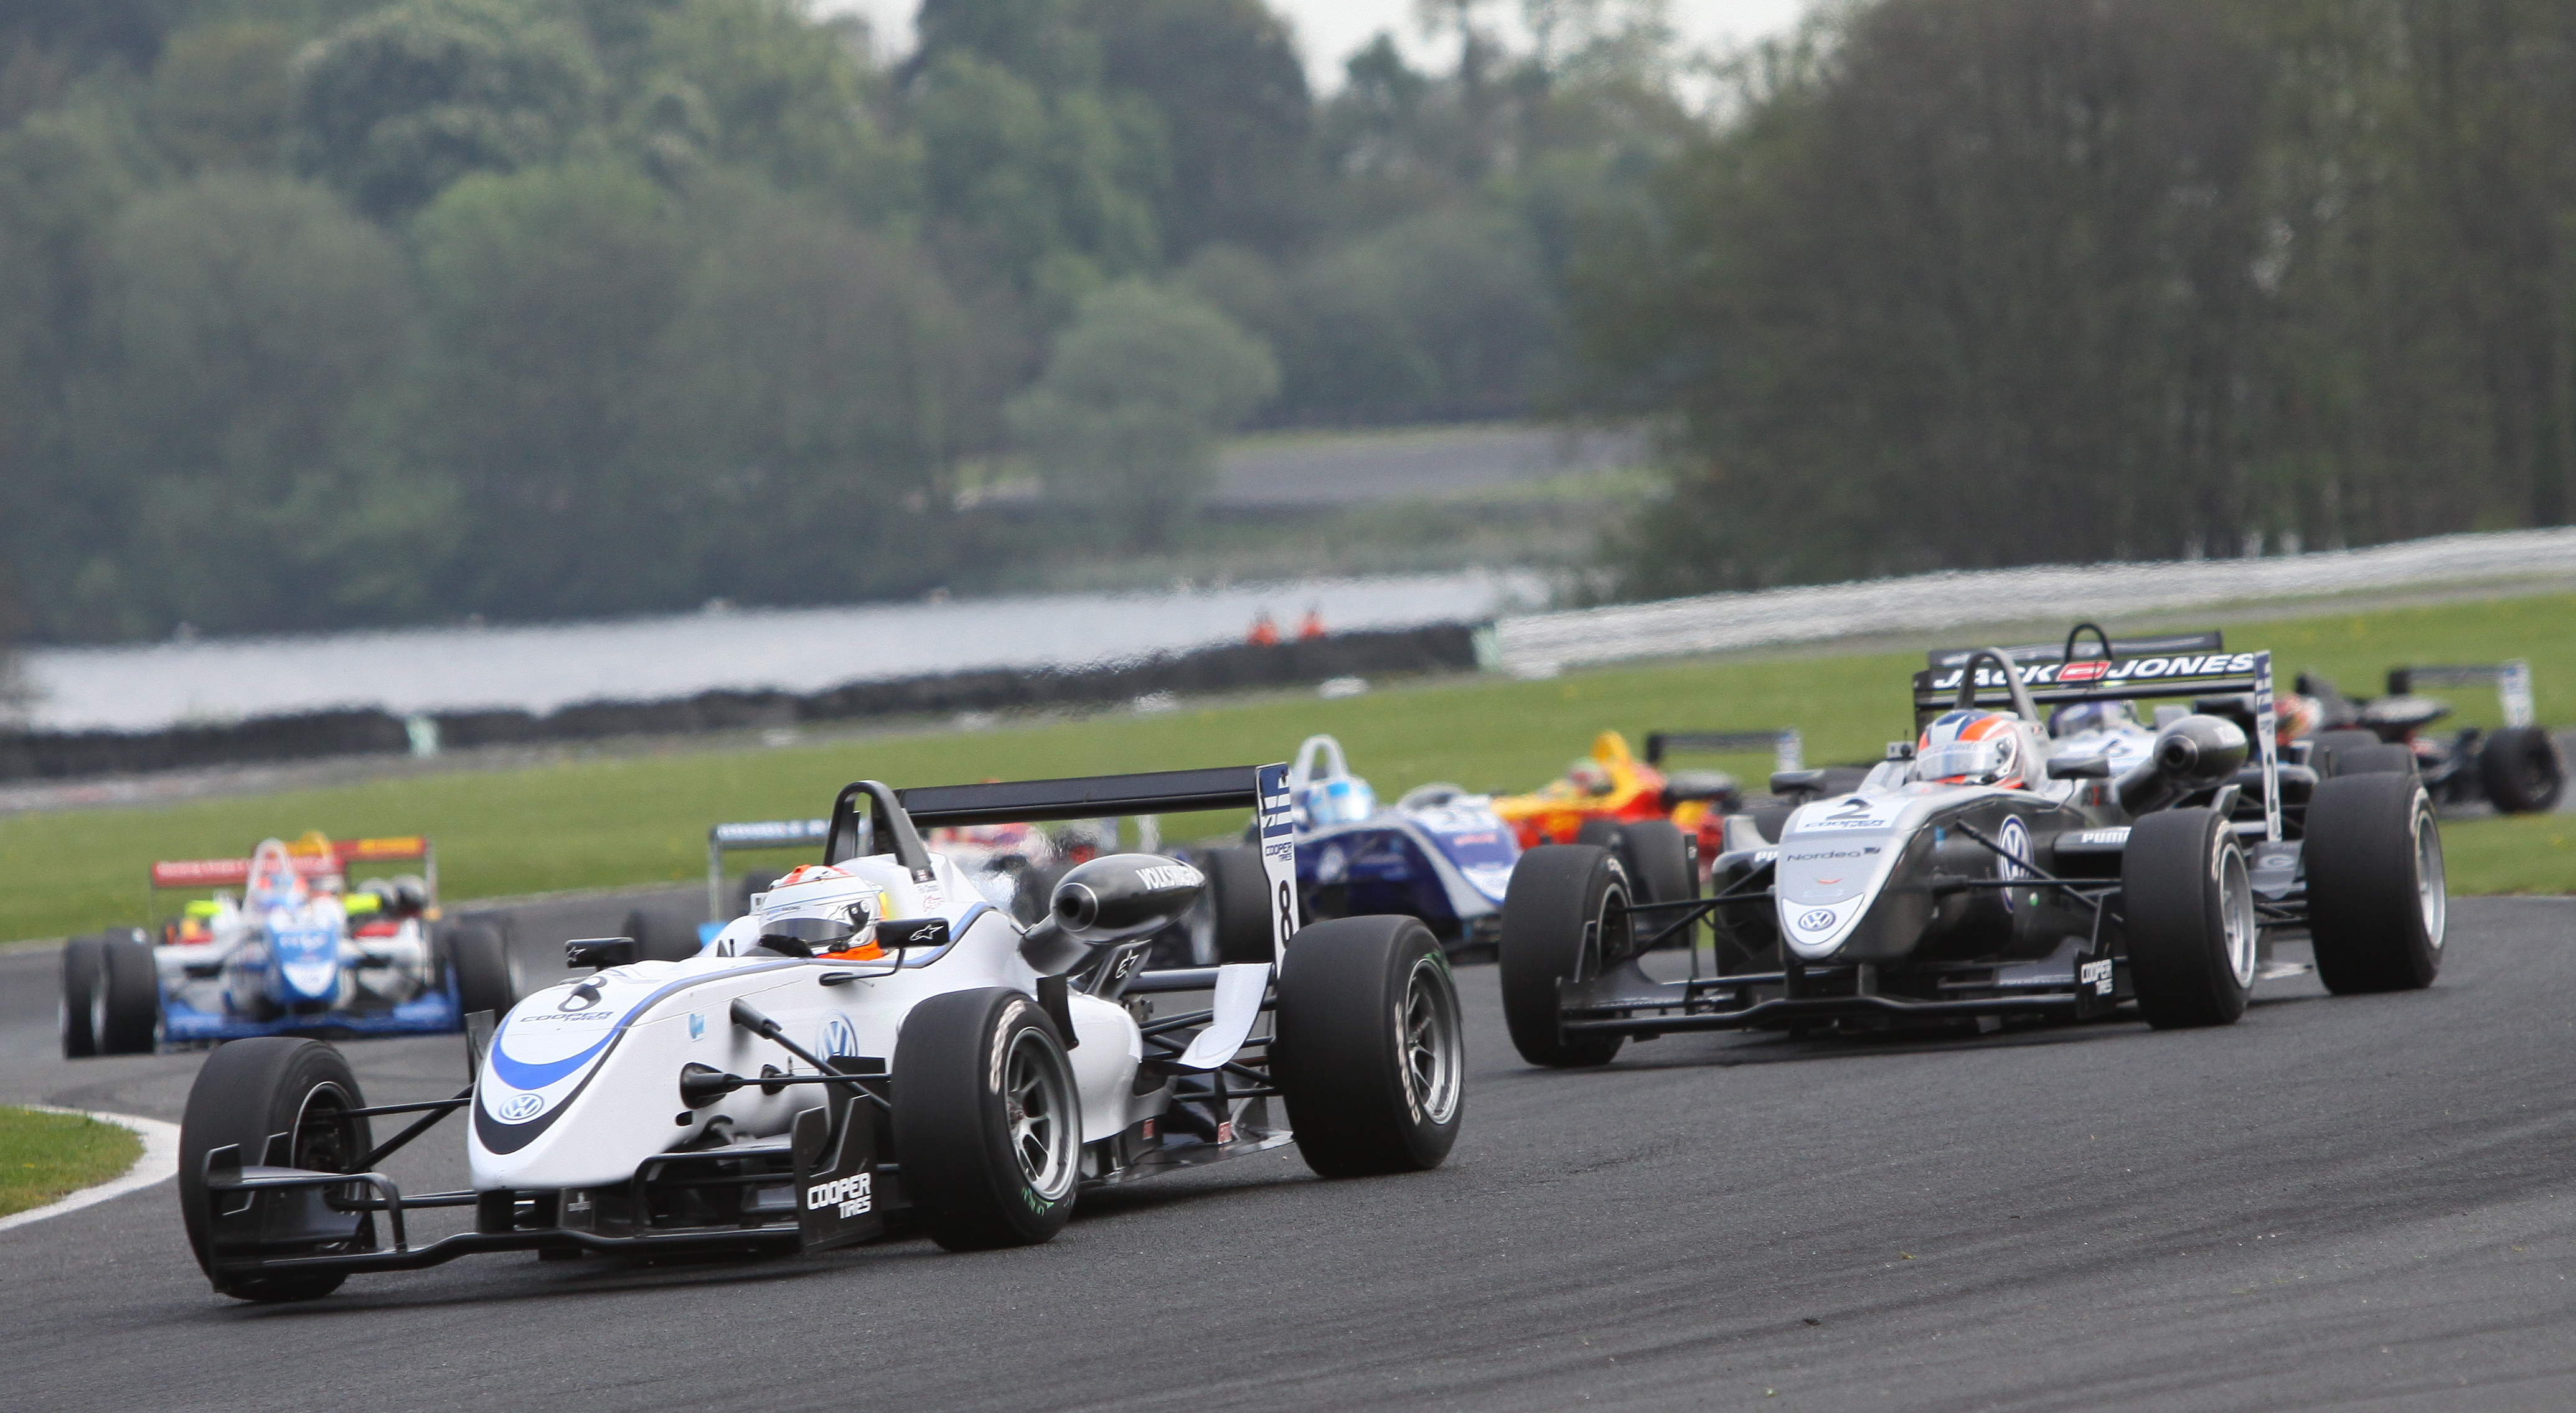 MSVR News - MSVR hosts F3/GT on the new Snetterton 300 circuit